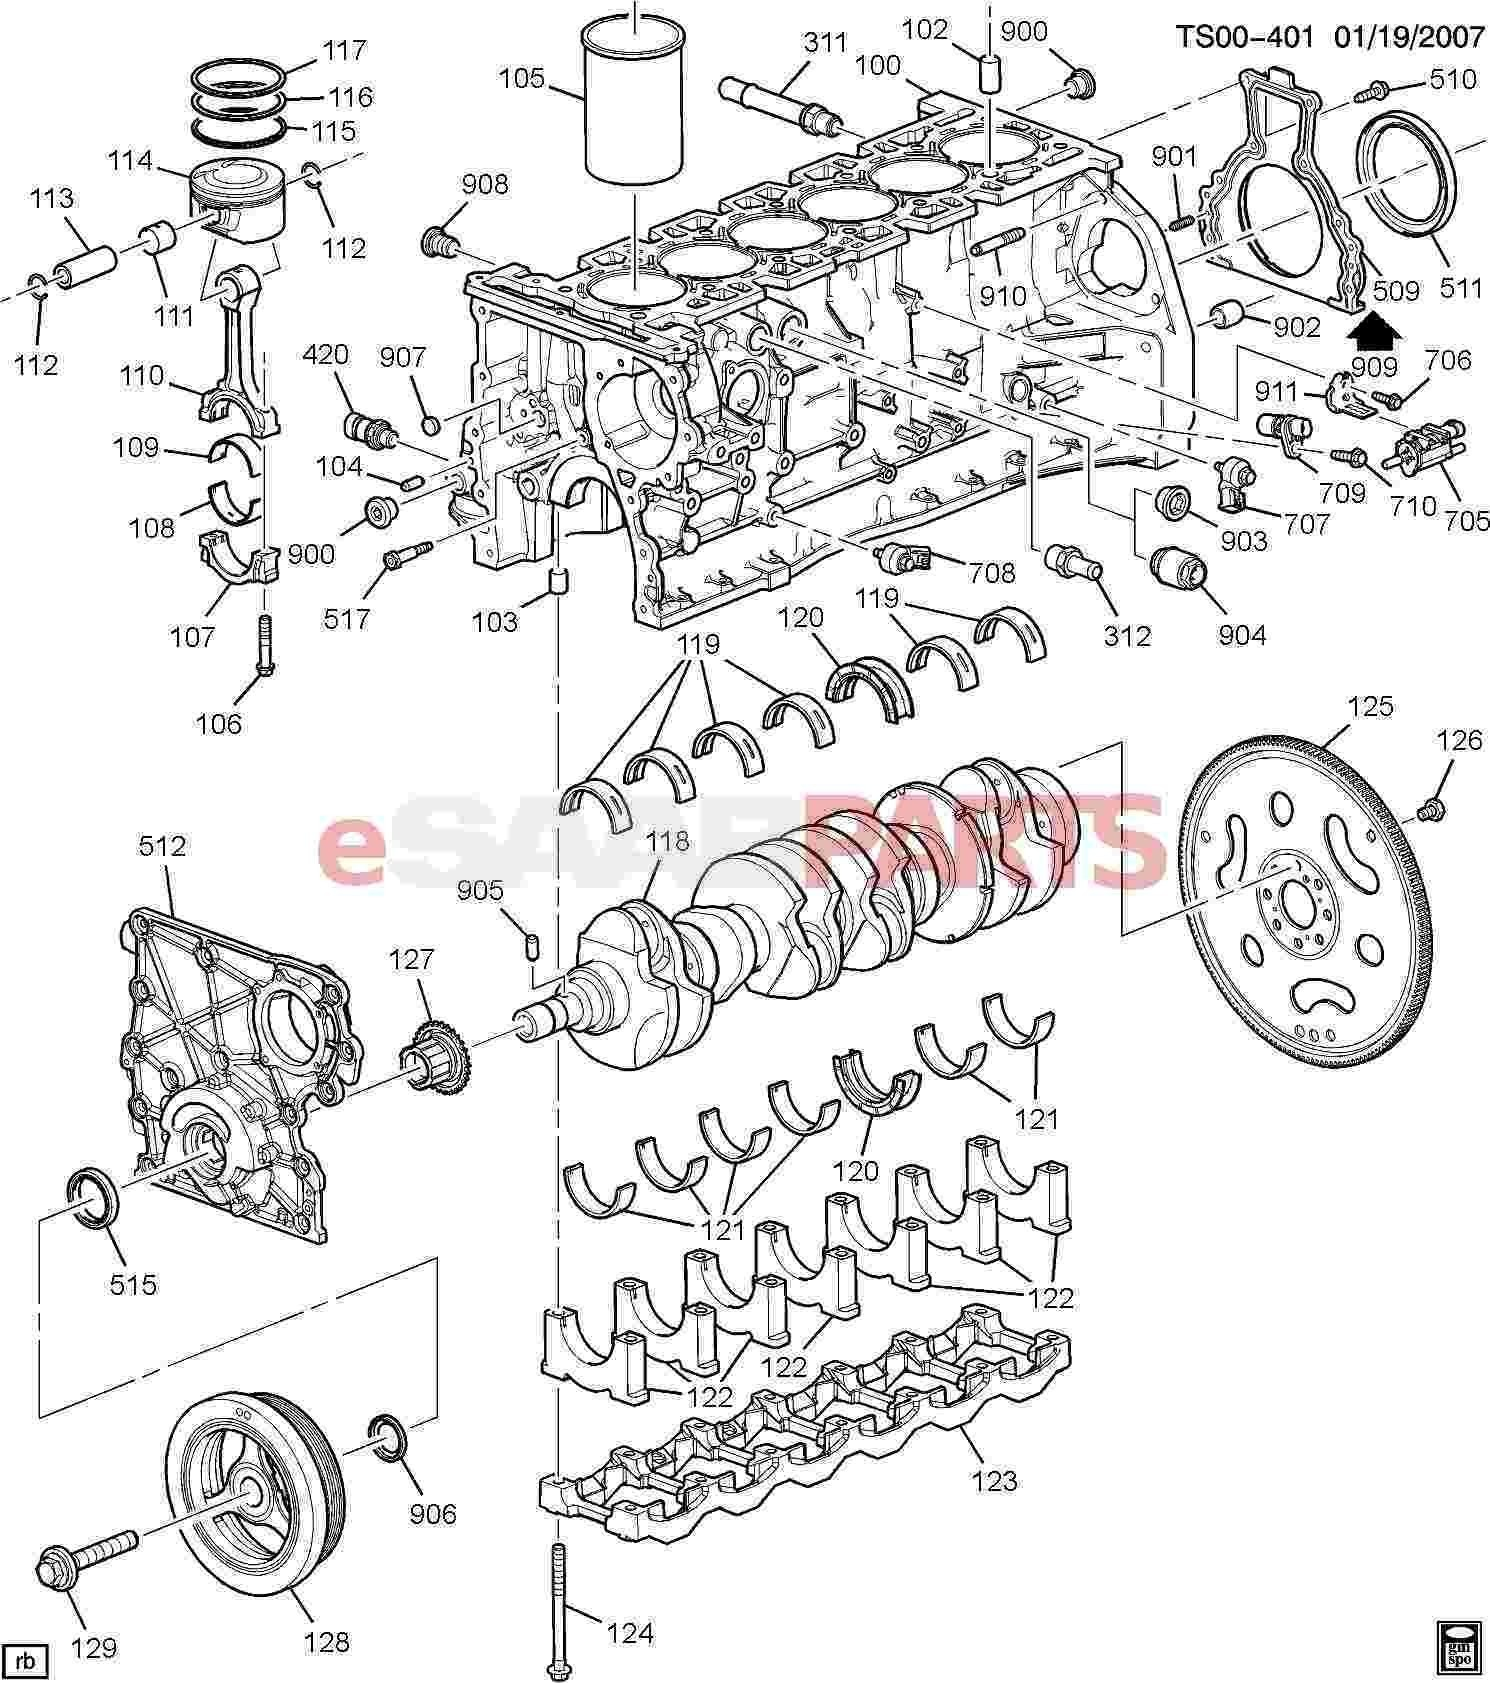 2001 Chevy Blazer Engine Diagram 2001 Blazer Engine Diagram Of 2001 Chevy Blazer Engine Diagram P1810 2004 Chevy Trailblazer Transmission Wont Shift Out Of Gear